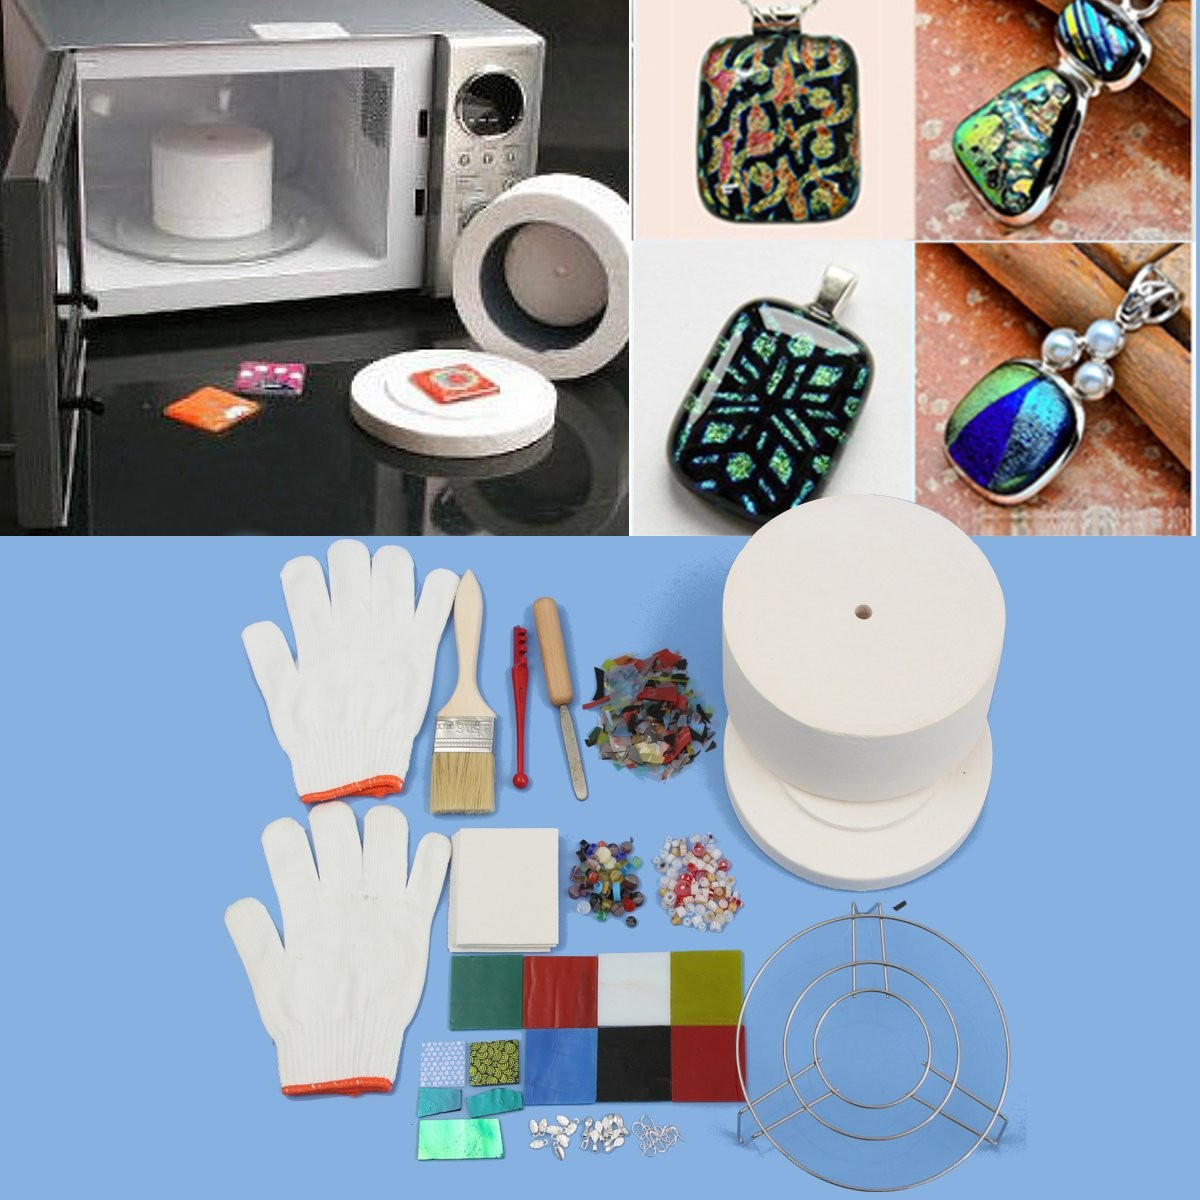 15pcs Set Professional Microwave Kiln Kit Large Glass Fusing Kit DIY Jewellery Glass Fusing Art Fuseworks